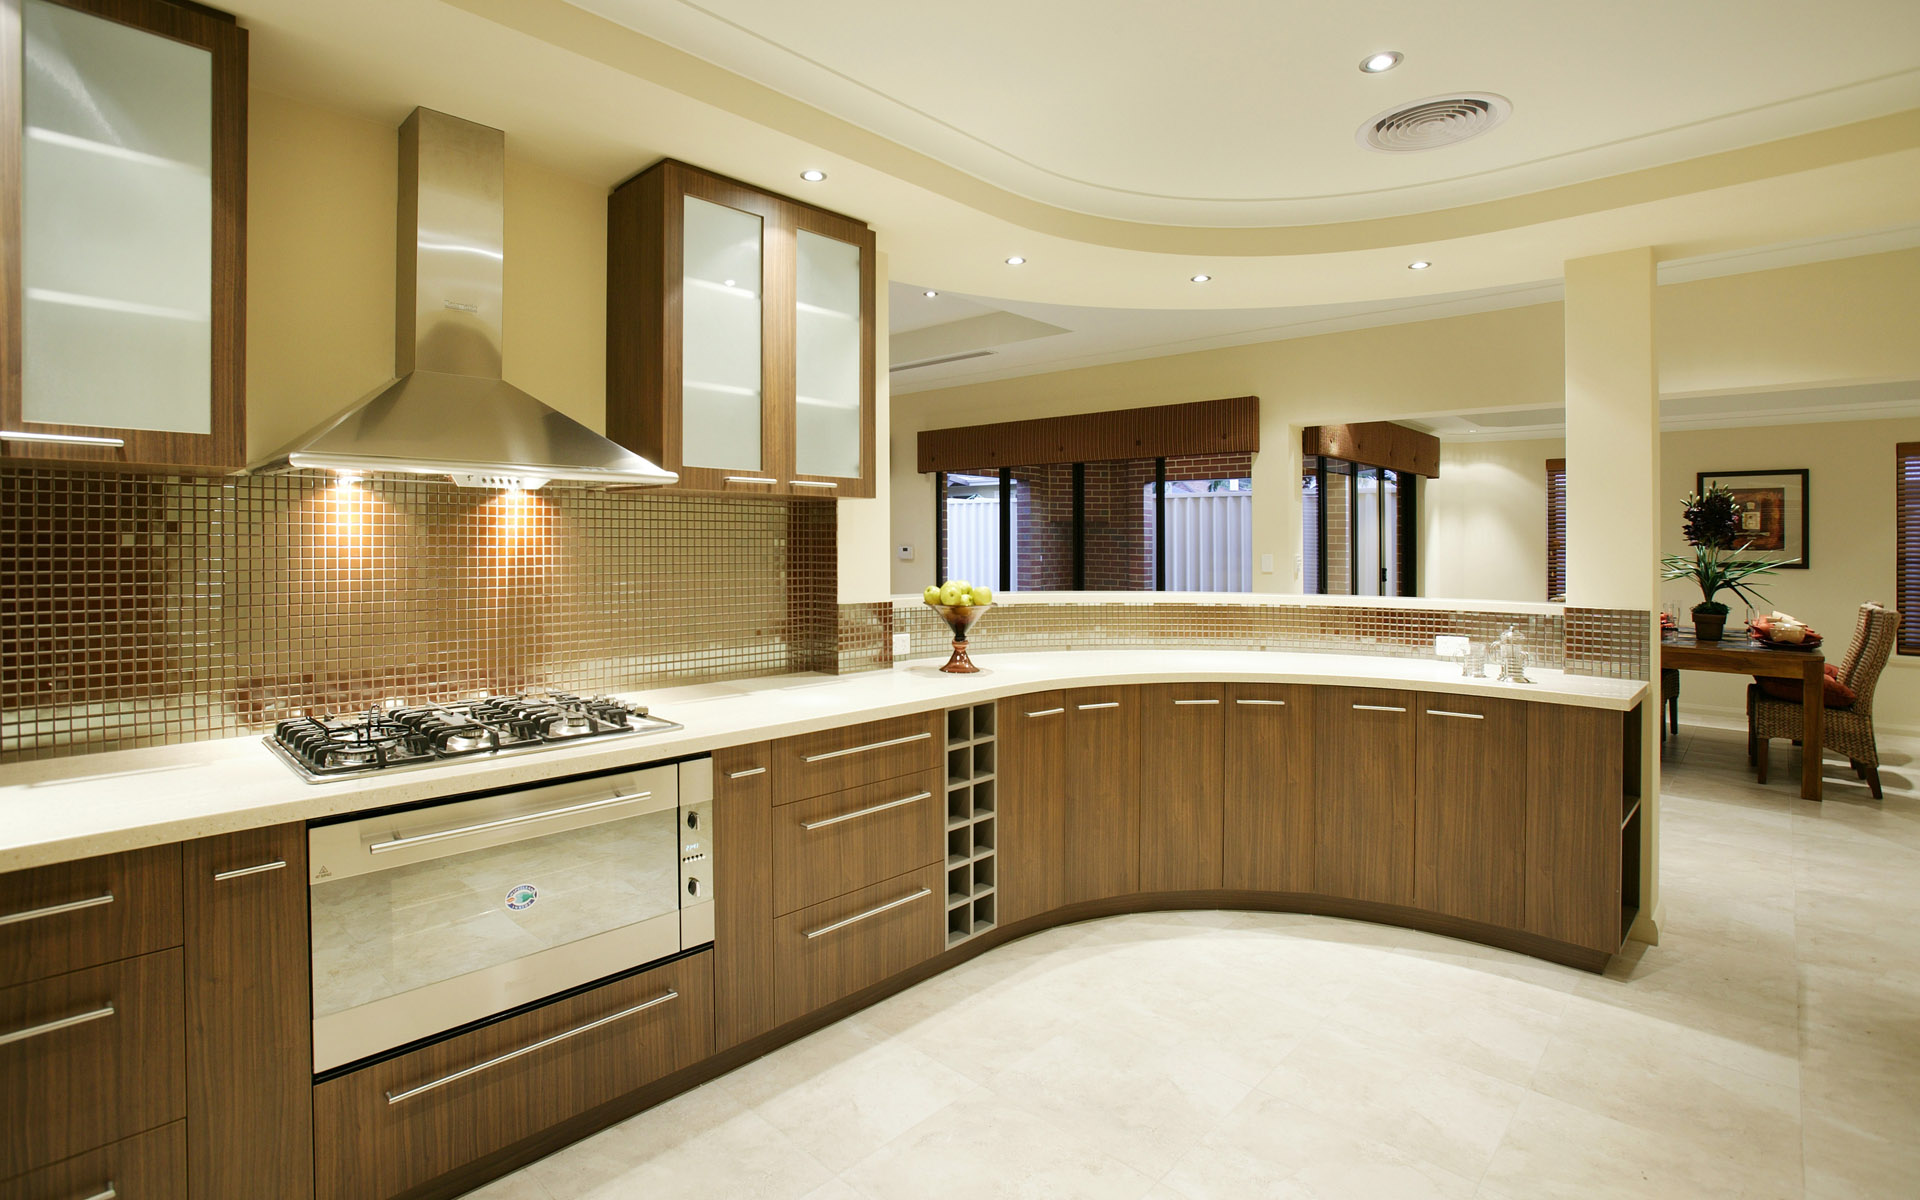 New Modern Kitchen Design · U003e New Modern Kitchen Design